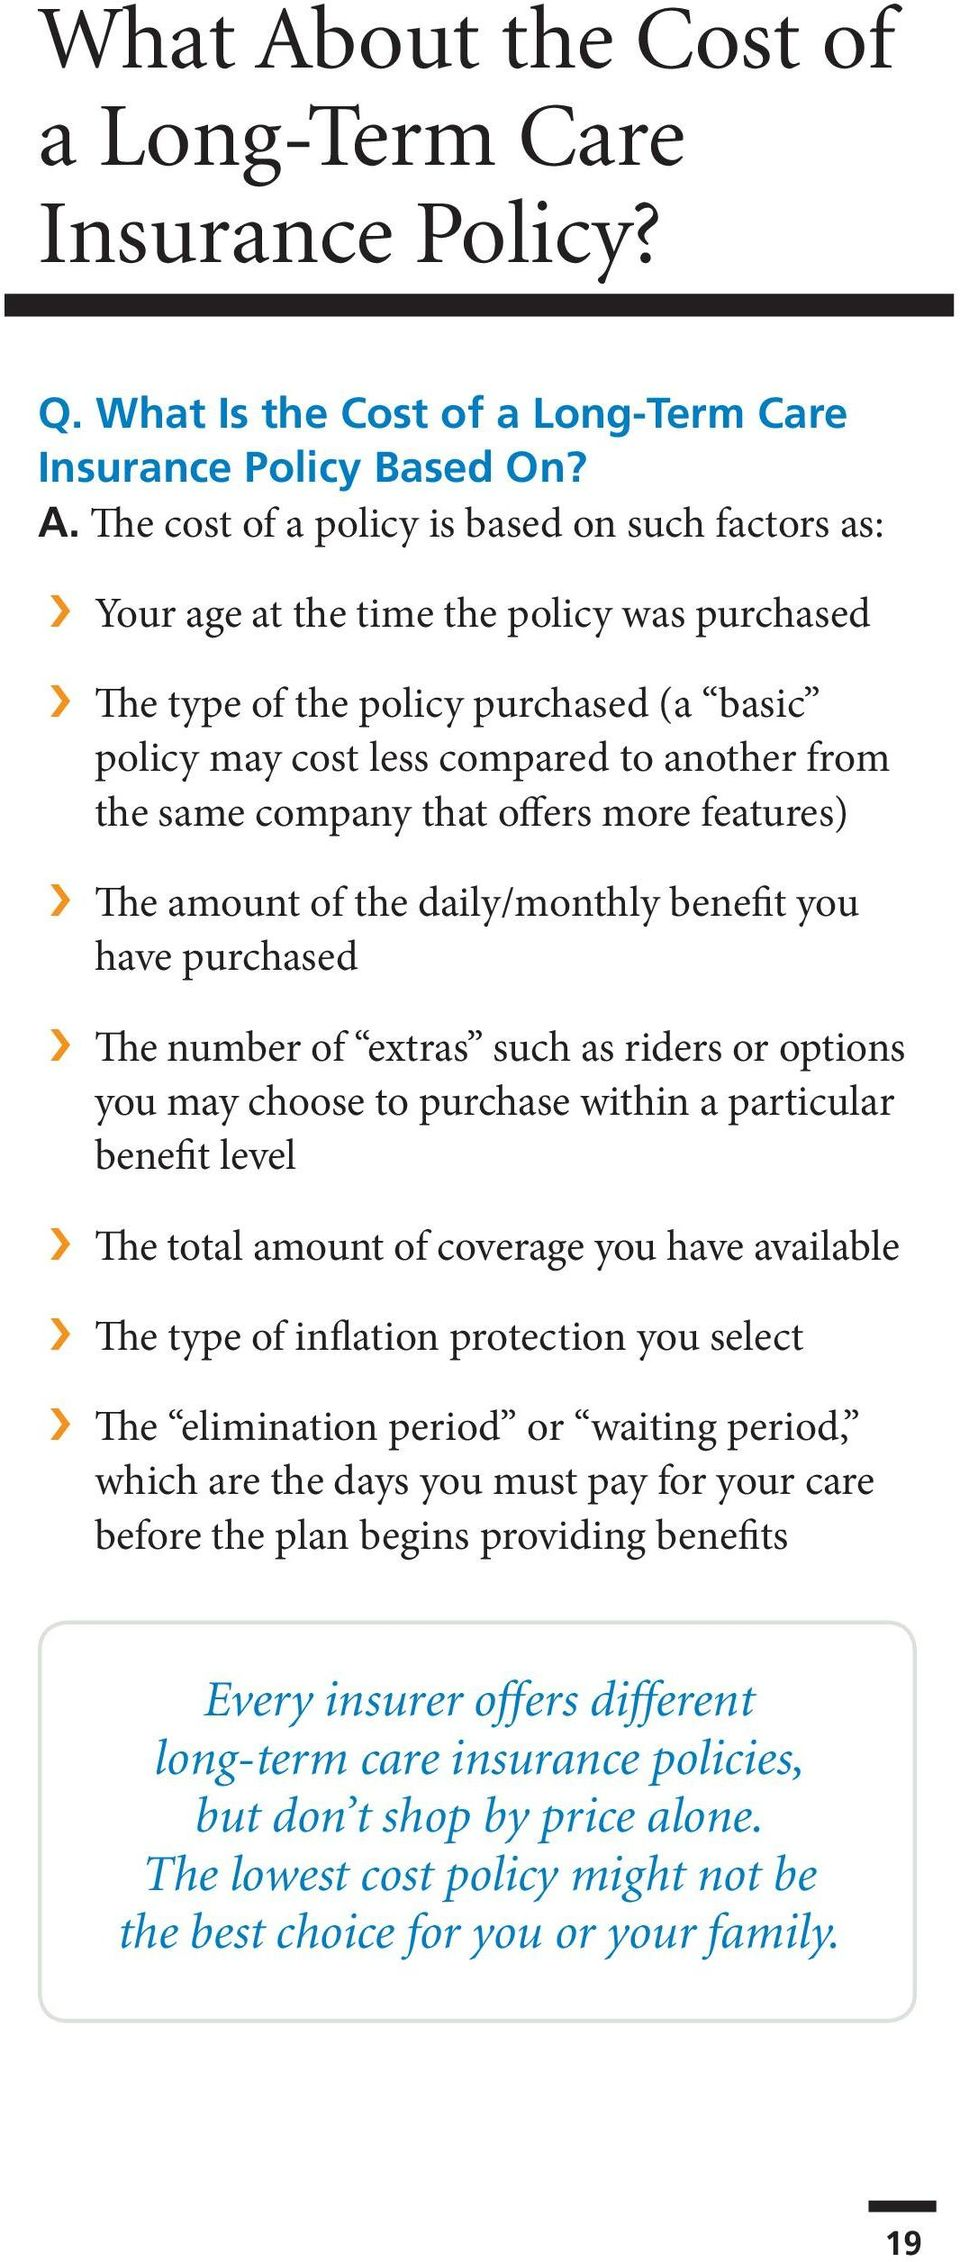 The cost of a policy is based on such factors as: Your age at the time the policy was purchased The type of the policy purchased (a basic policy may cost less compared to another from the same